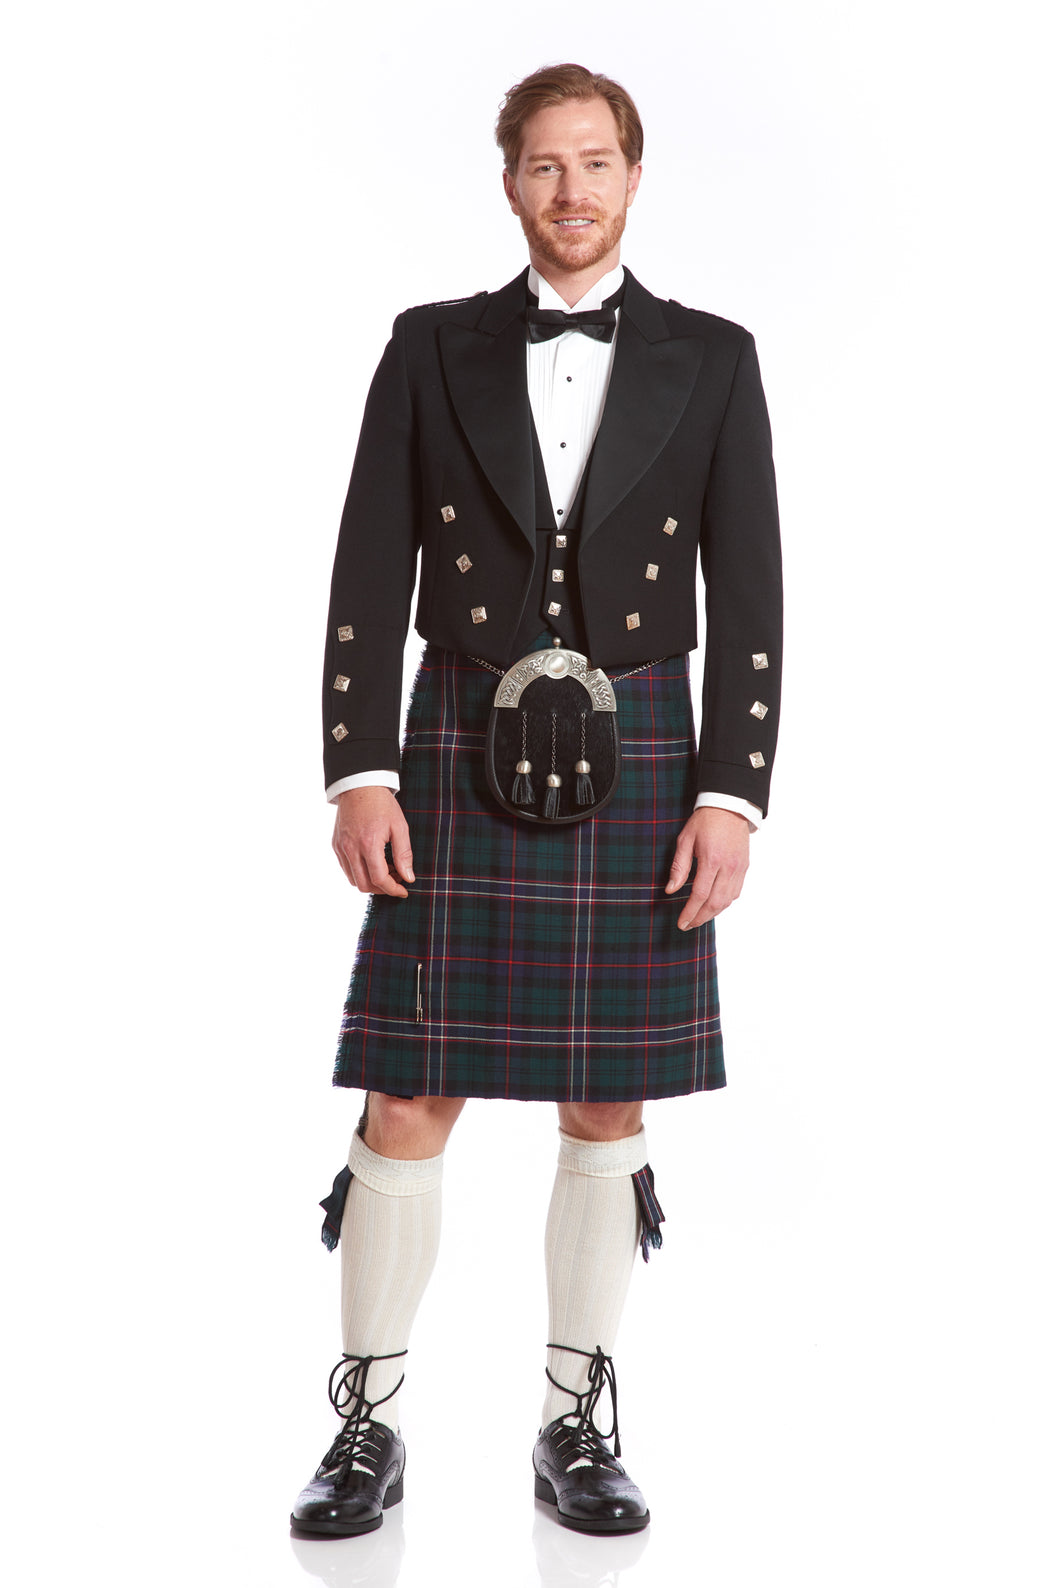 Prince Charlie Jacket & Kilt Rental Package | 3 Button Vest